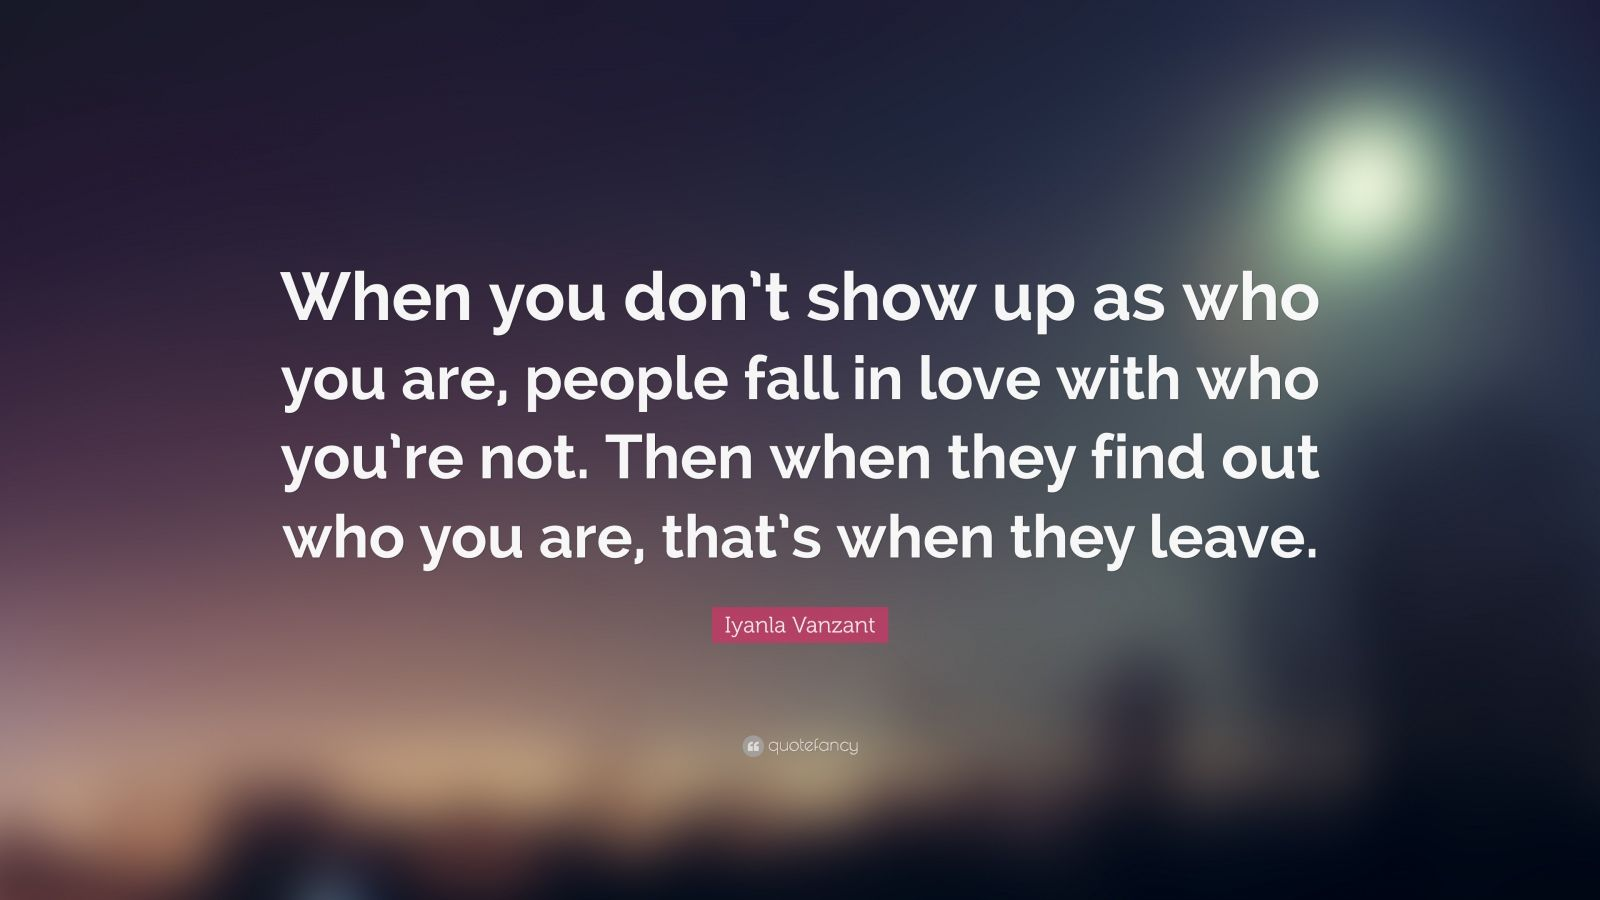 """Iyanla Vanzant Quote: """"When you don't show up as who you are, people fall in love with who you're not. Then when they find out who you are, that's when they leave."""""""